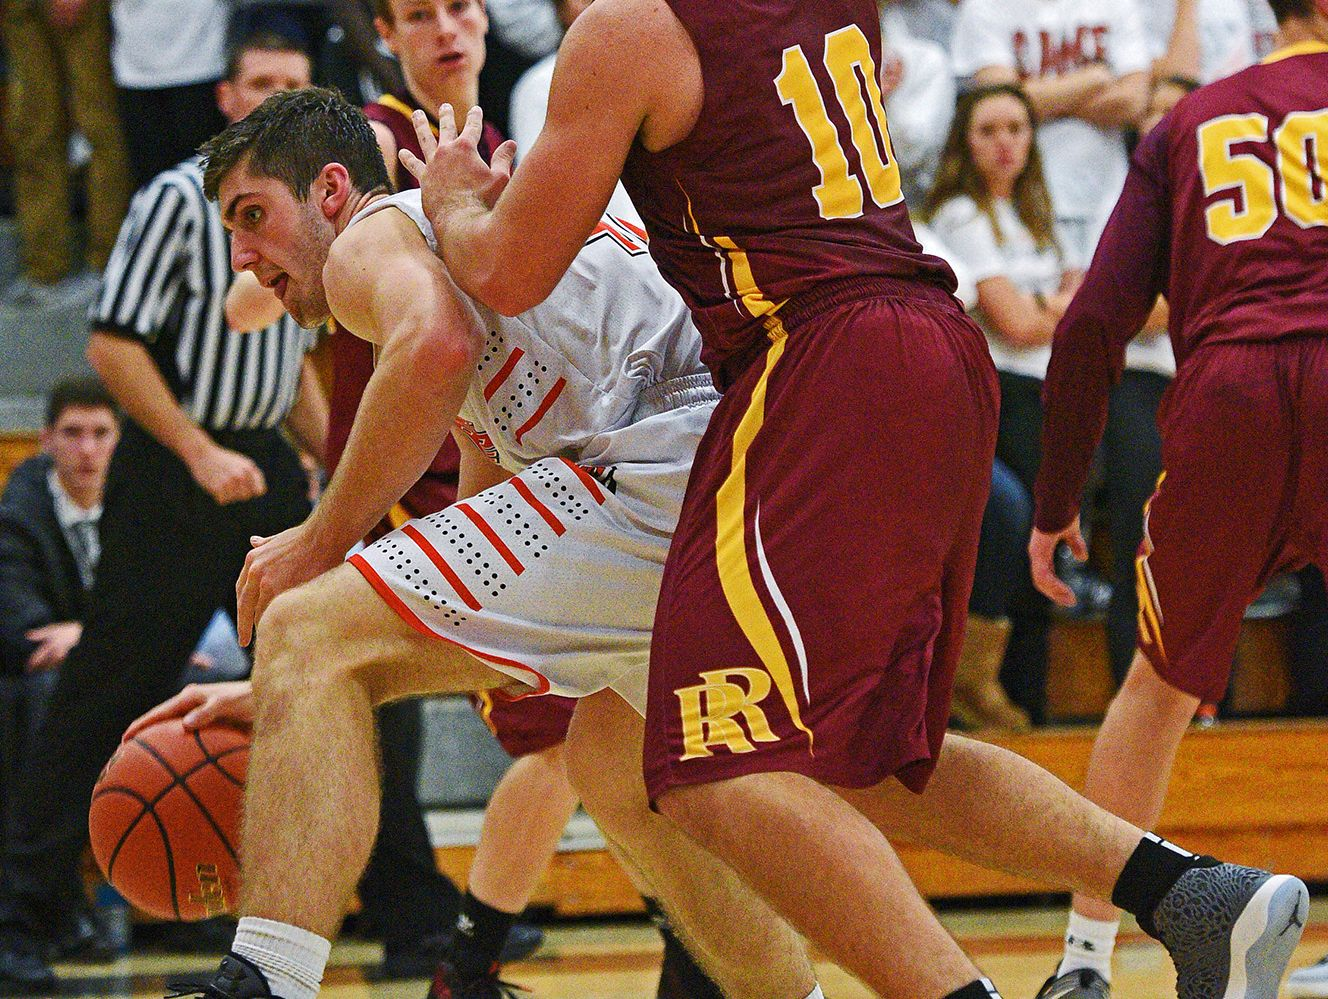 Washington's Isaac Goeman (42) pushes past Roosevelt's Coby Nofziger (10) during a game Tuesday, Dec. 13, 2016, at Washington High School in Sioux Falls.